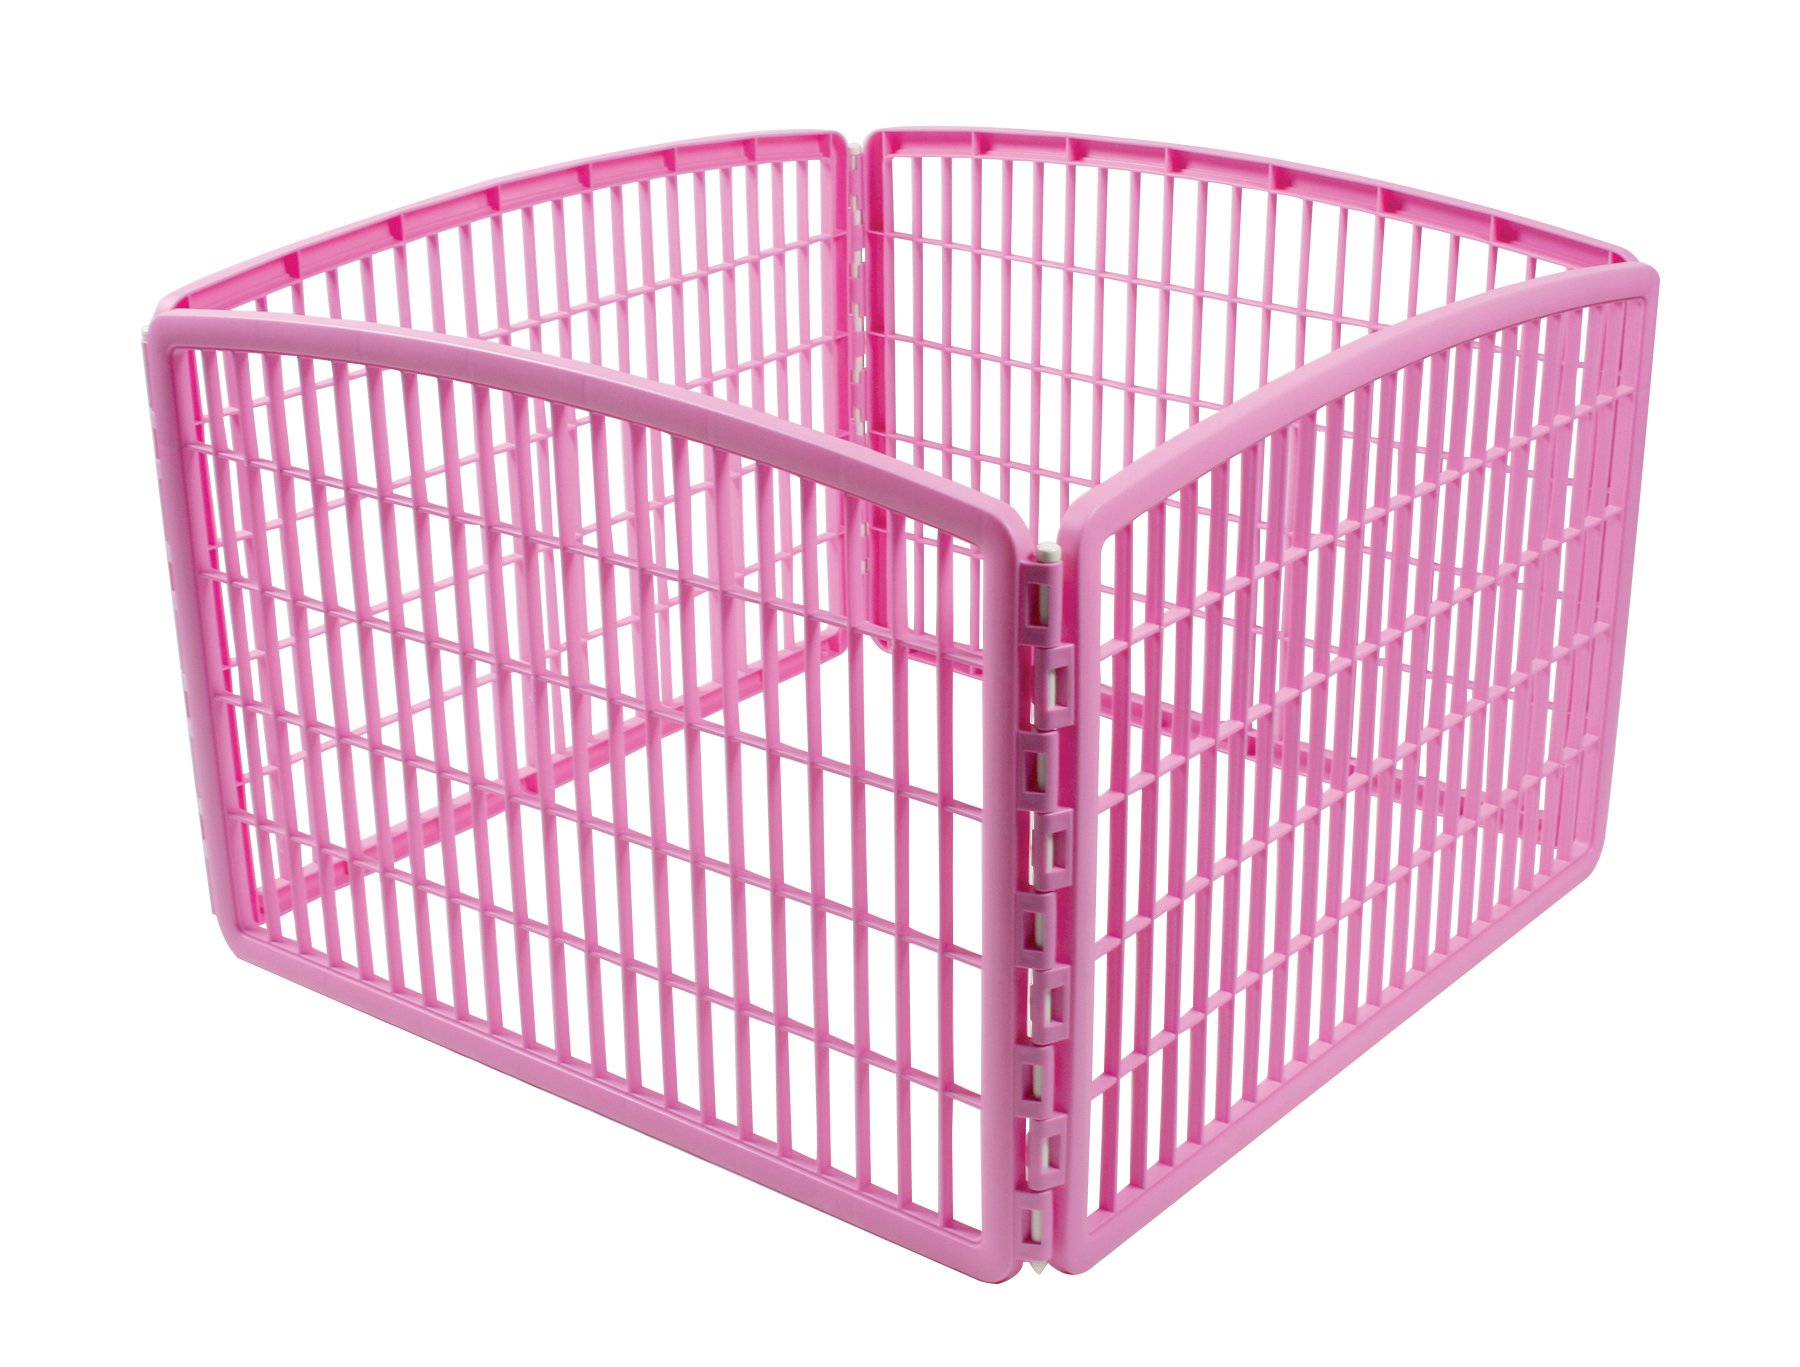 IRIS 24'' Exercise 4-Panel Pet Playpen without Door, Pink by IRIS USA, Inc.